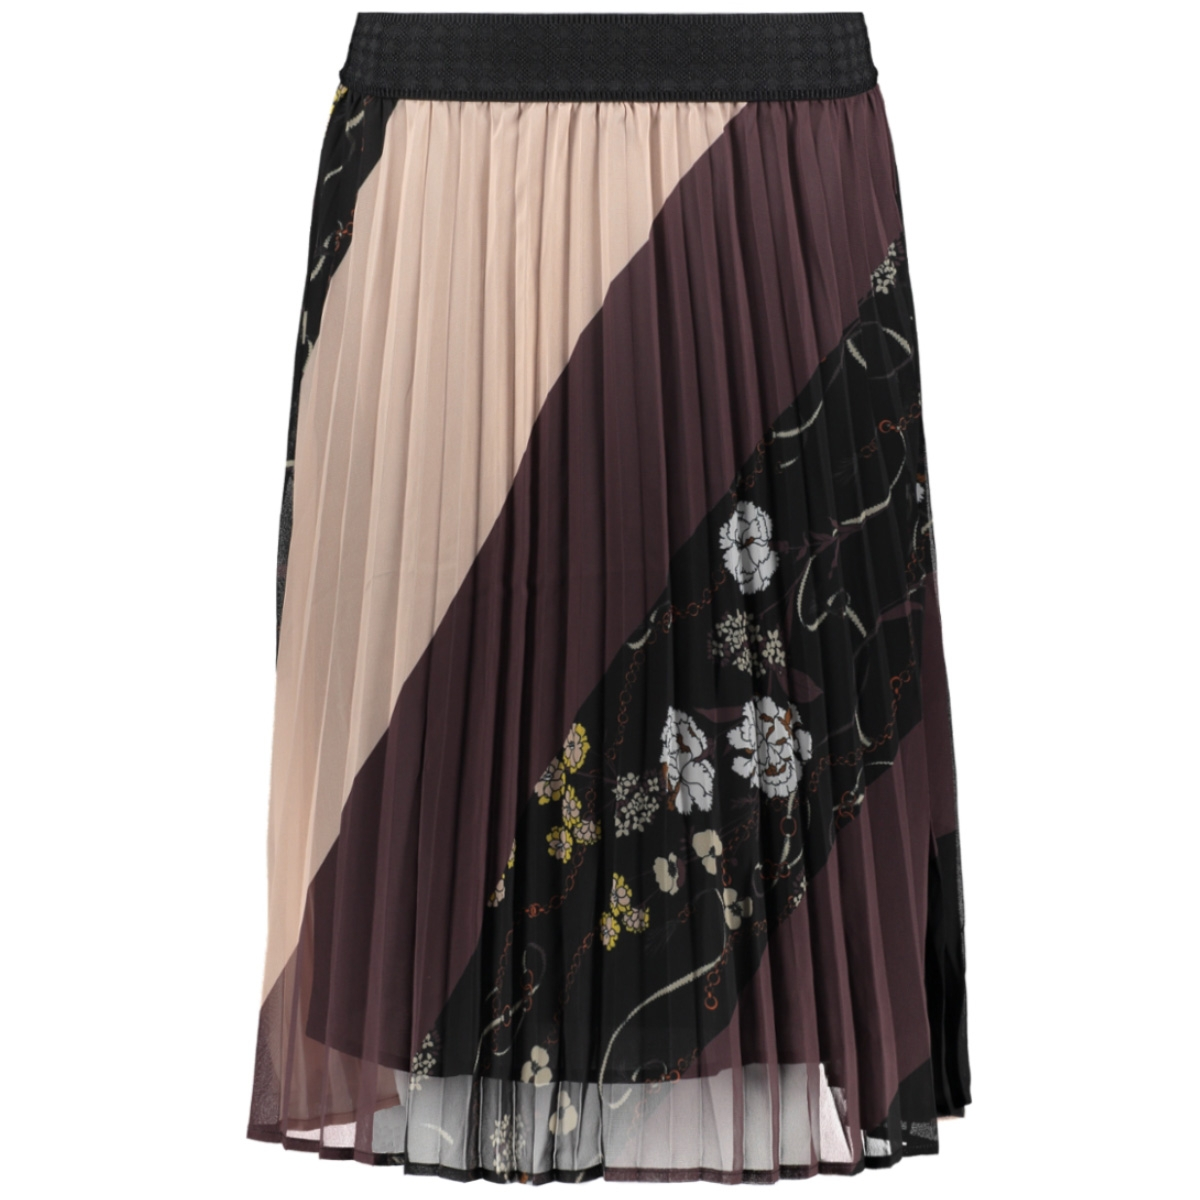 woven plisse skirt below knee u8049 30501744 saint tropez rok 0001